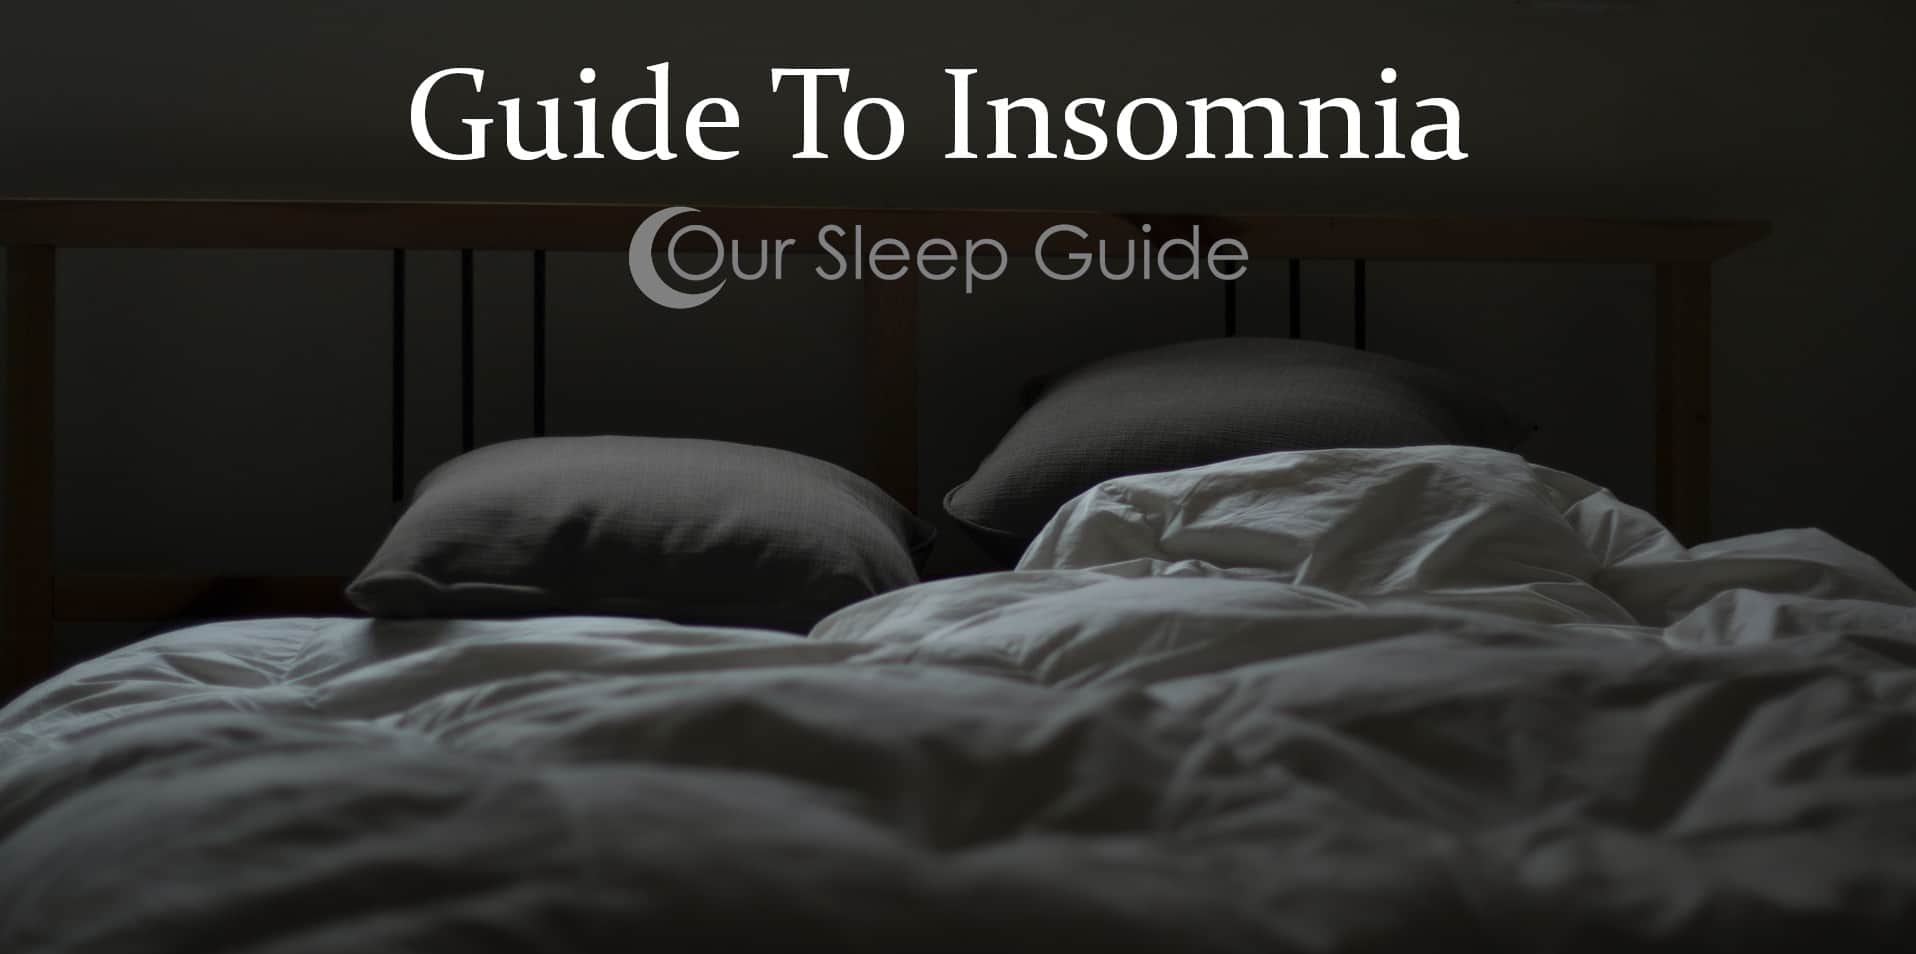 the our sleep guide to insomnia